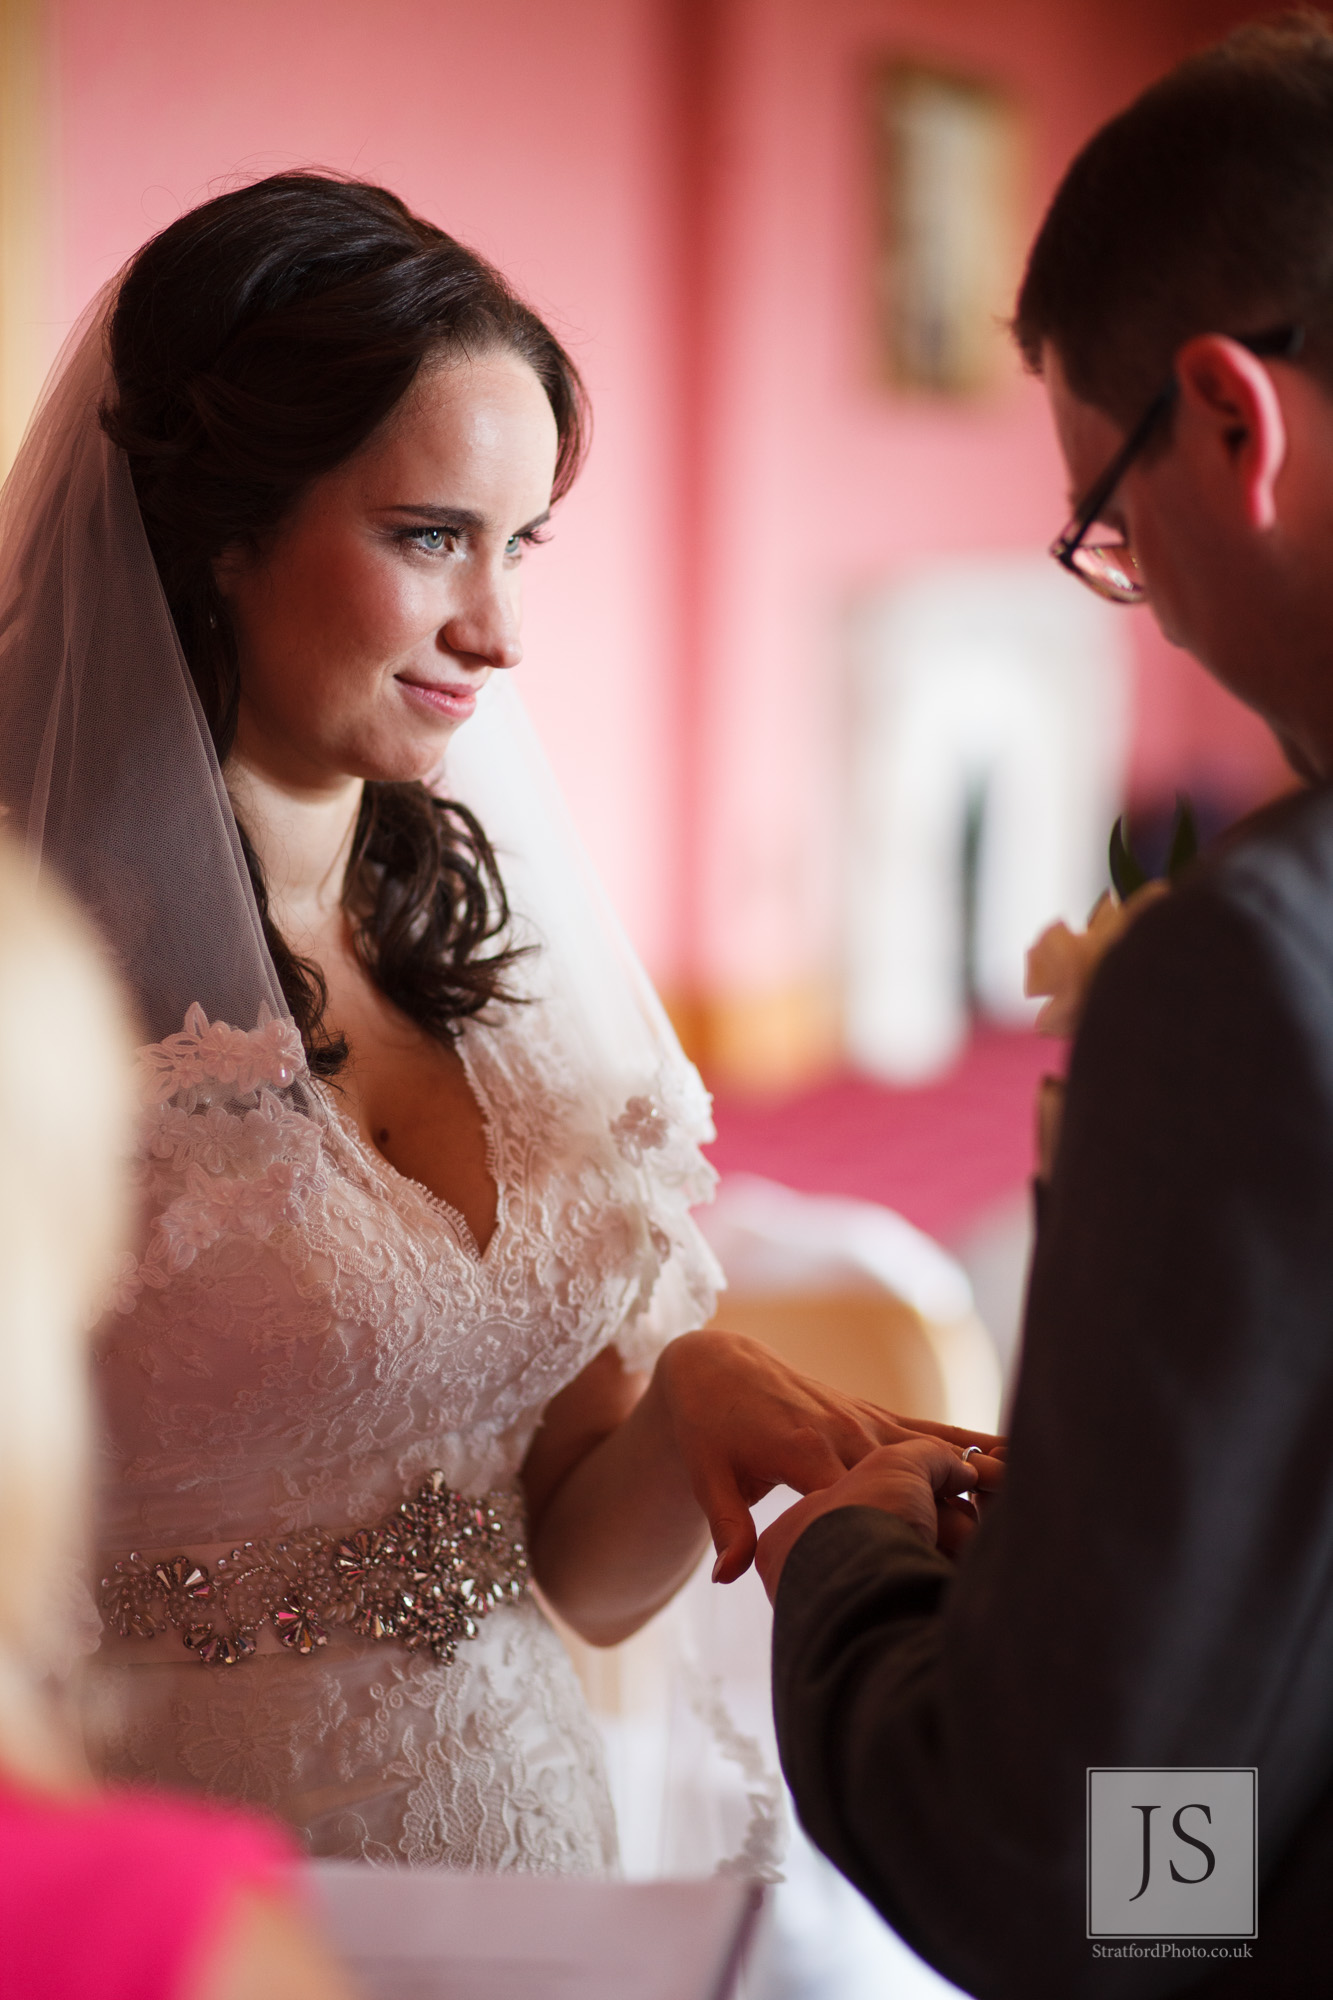 A bride recieves her wedding ring at Haigh Hall.jpg